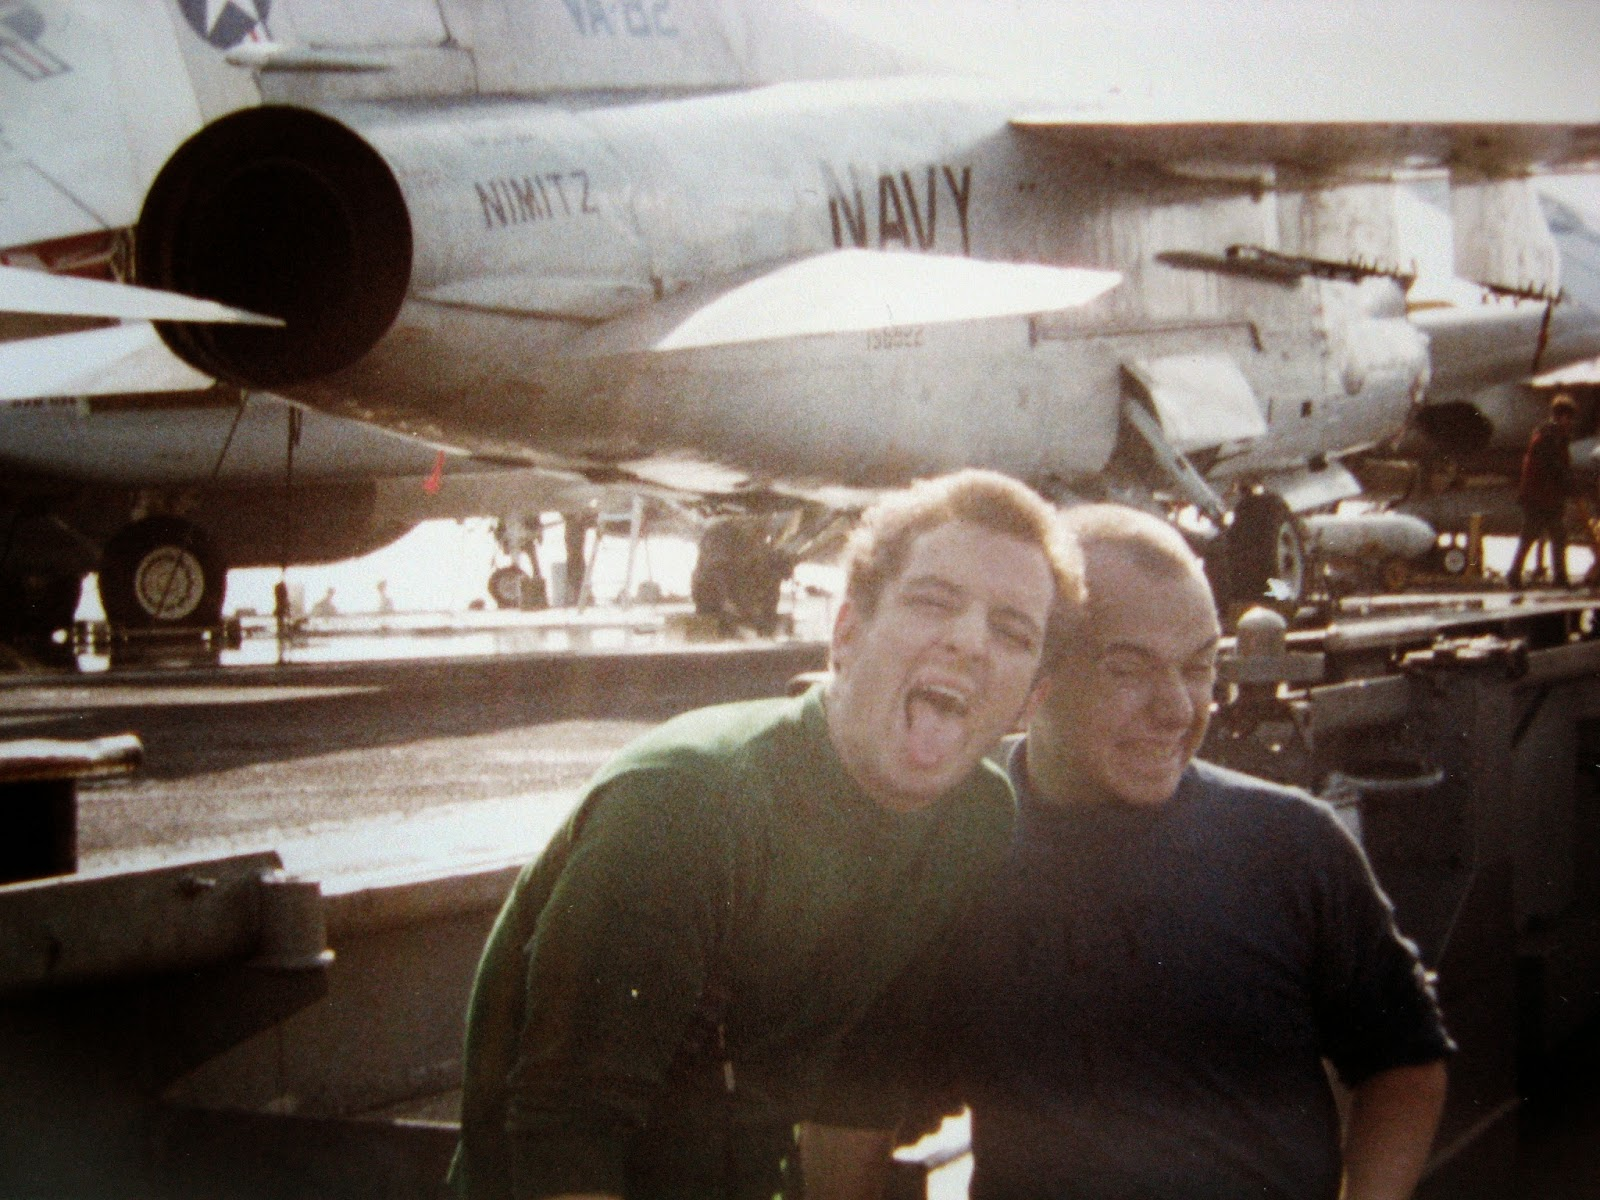 Billy (right) and pal on the Nimitz flight deck 1982/83